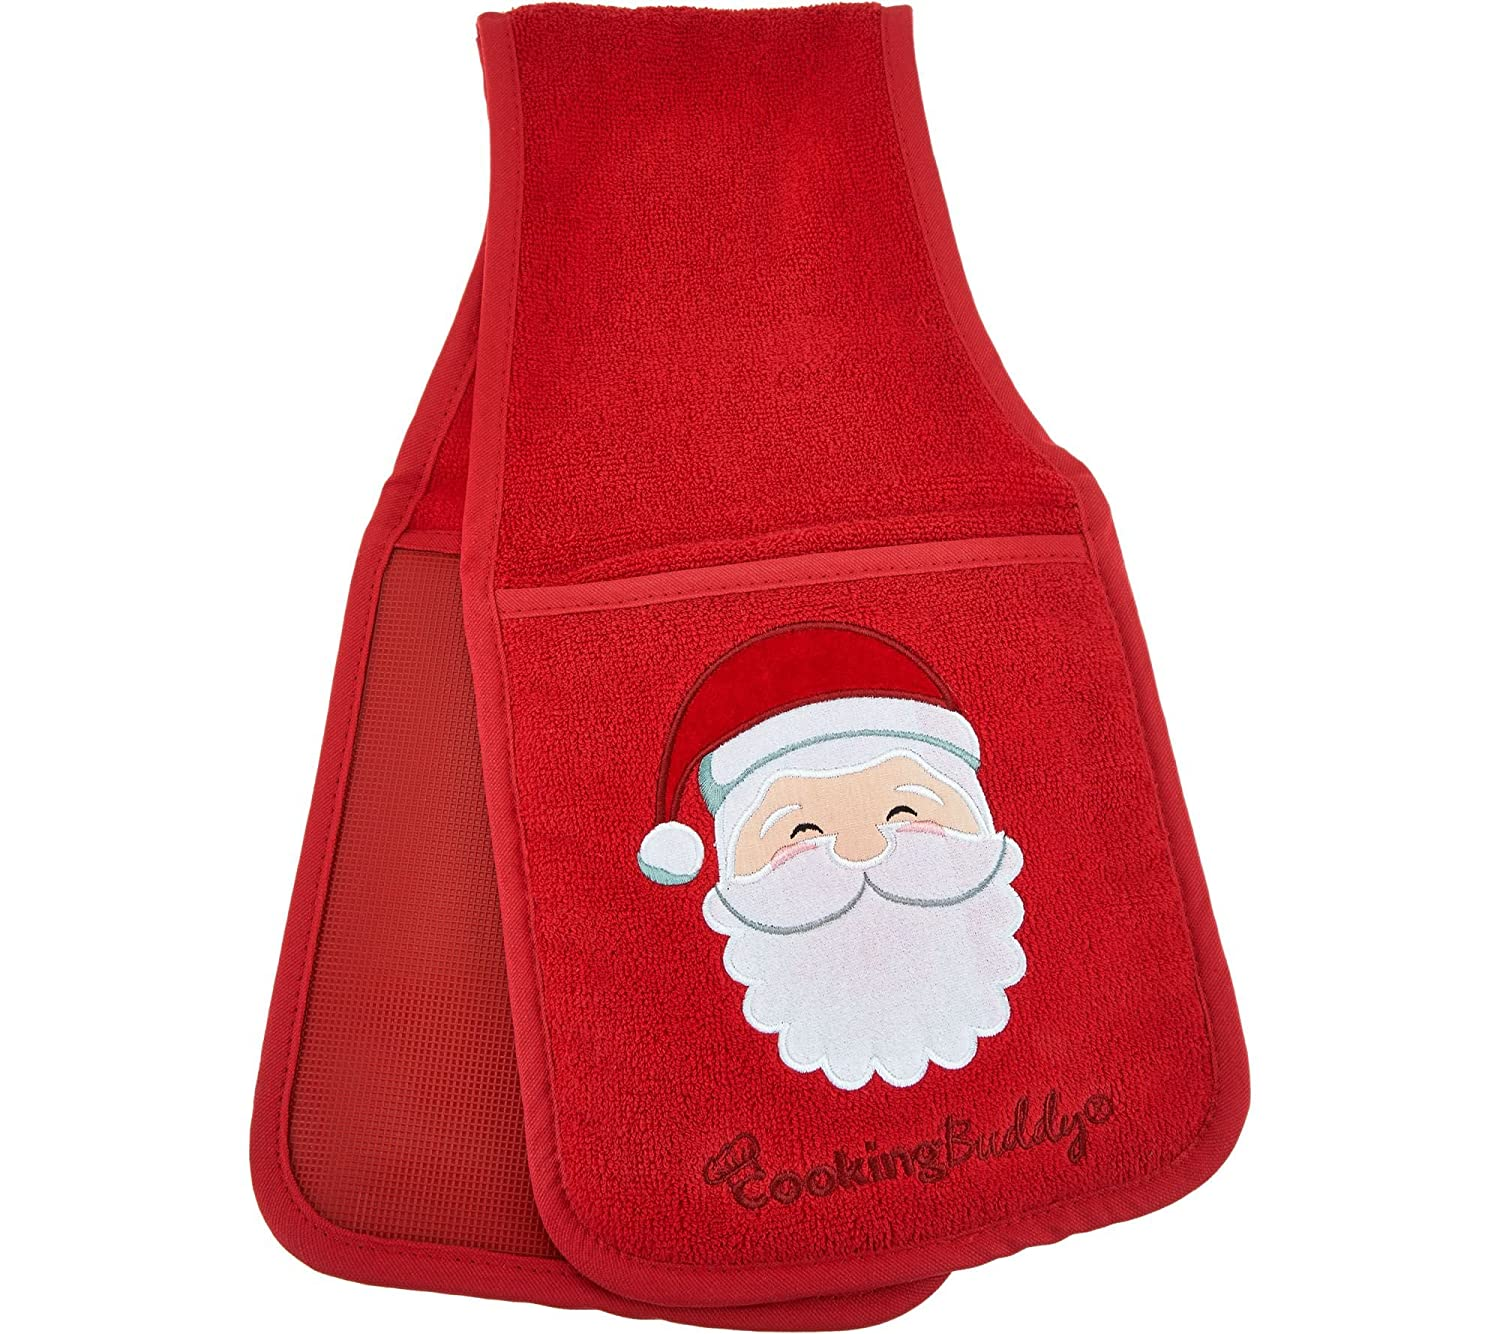 Campanelli's Cooking Buddy - Professional Grade All-in-One Pot Holder, Hand Towel, Lid Grip, Tool Caddy, and Trivet. Heat Resistant up to 500ºF. (Limited Edition: Christmas Red Santa)